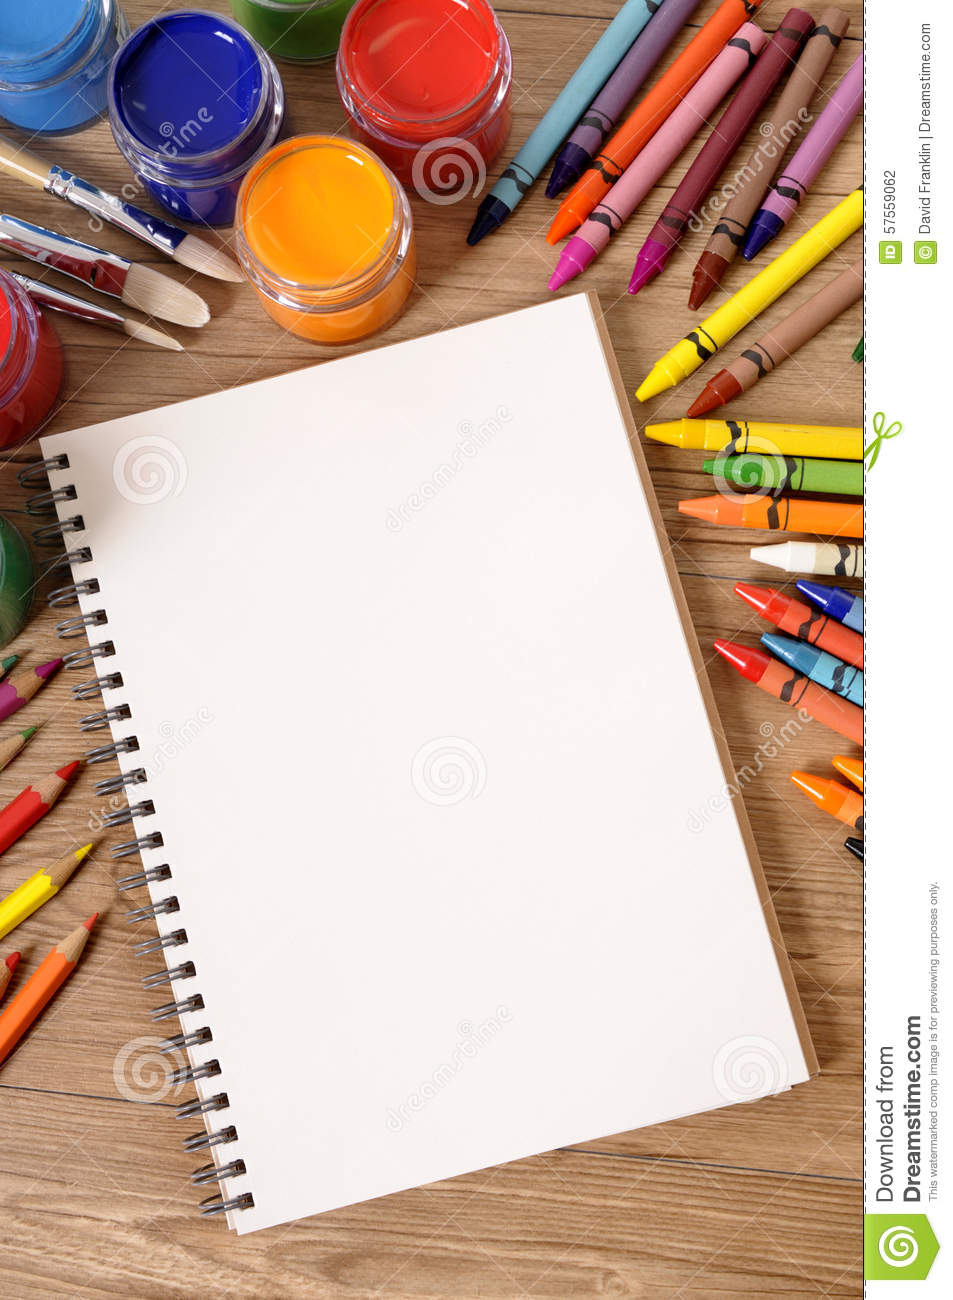 Blank Writing Book Open White Page Art Equipment Copy